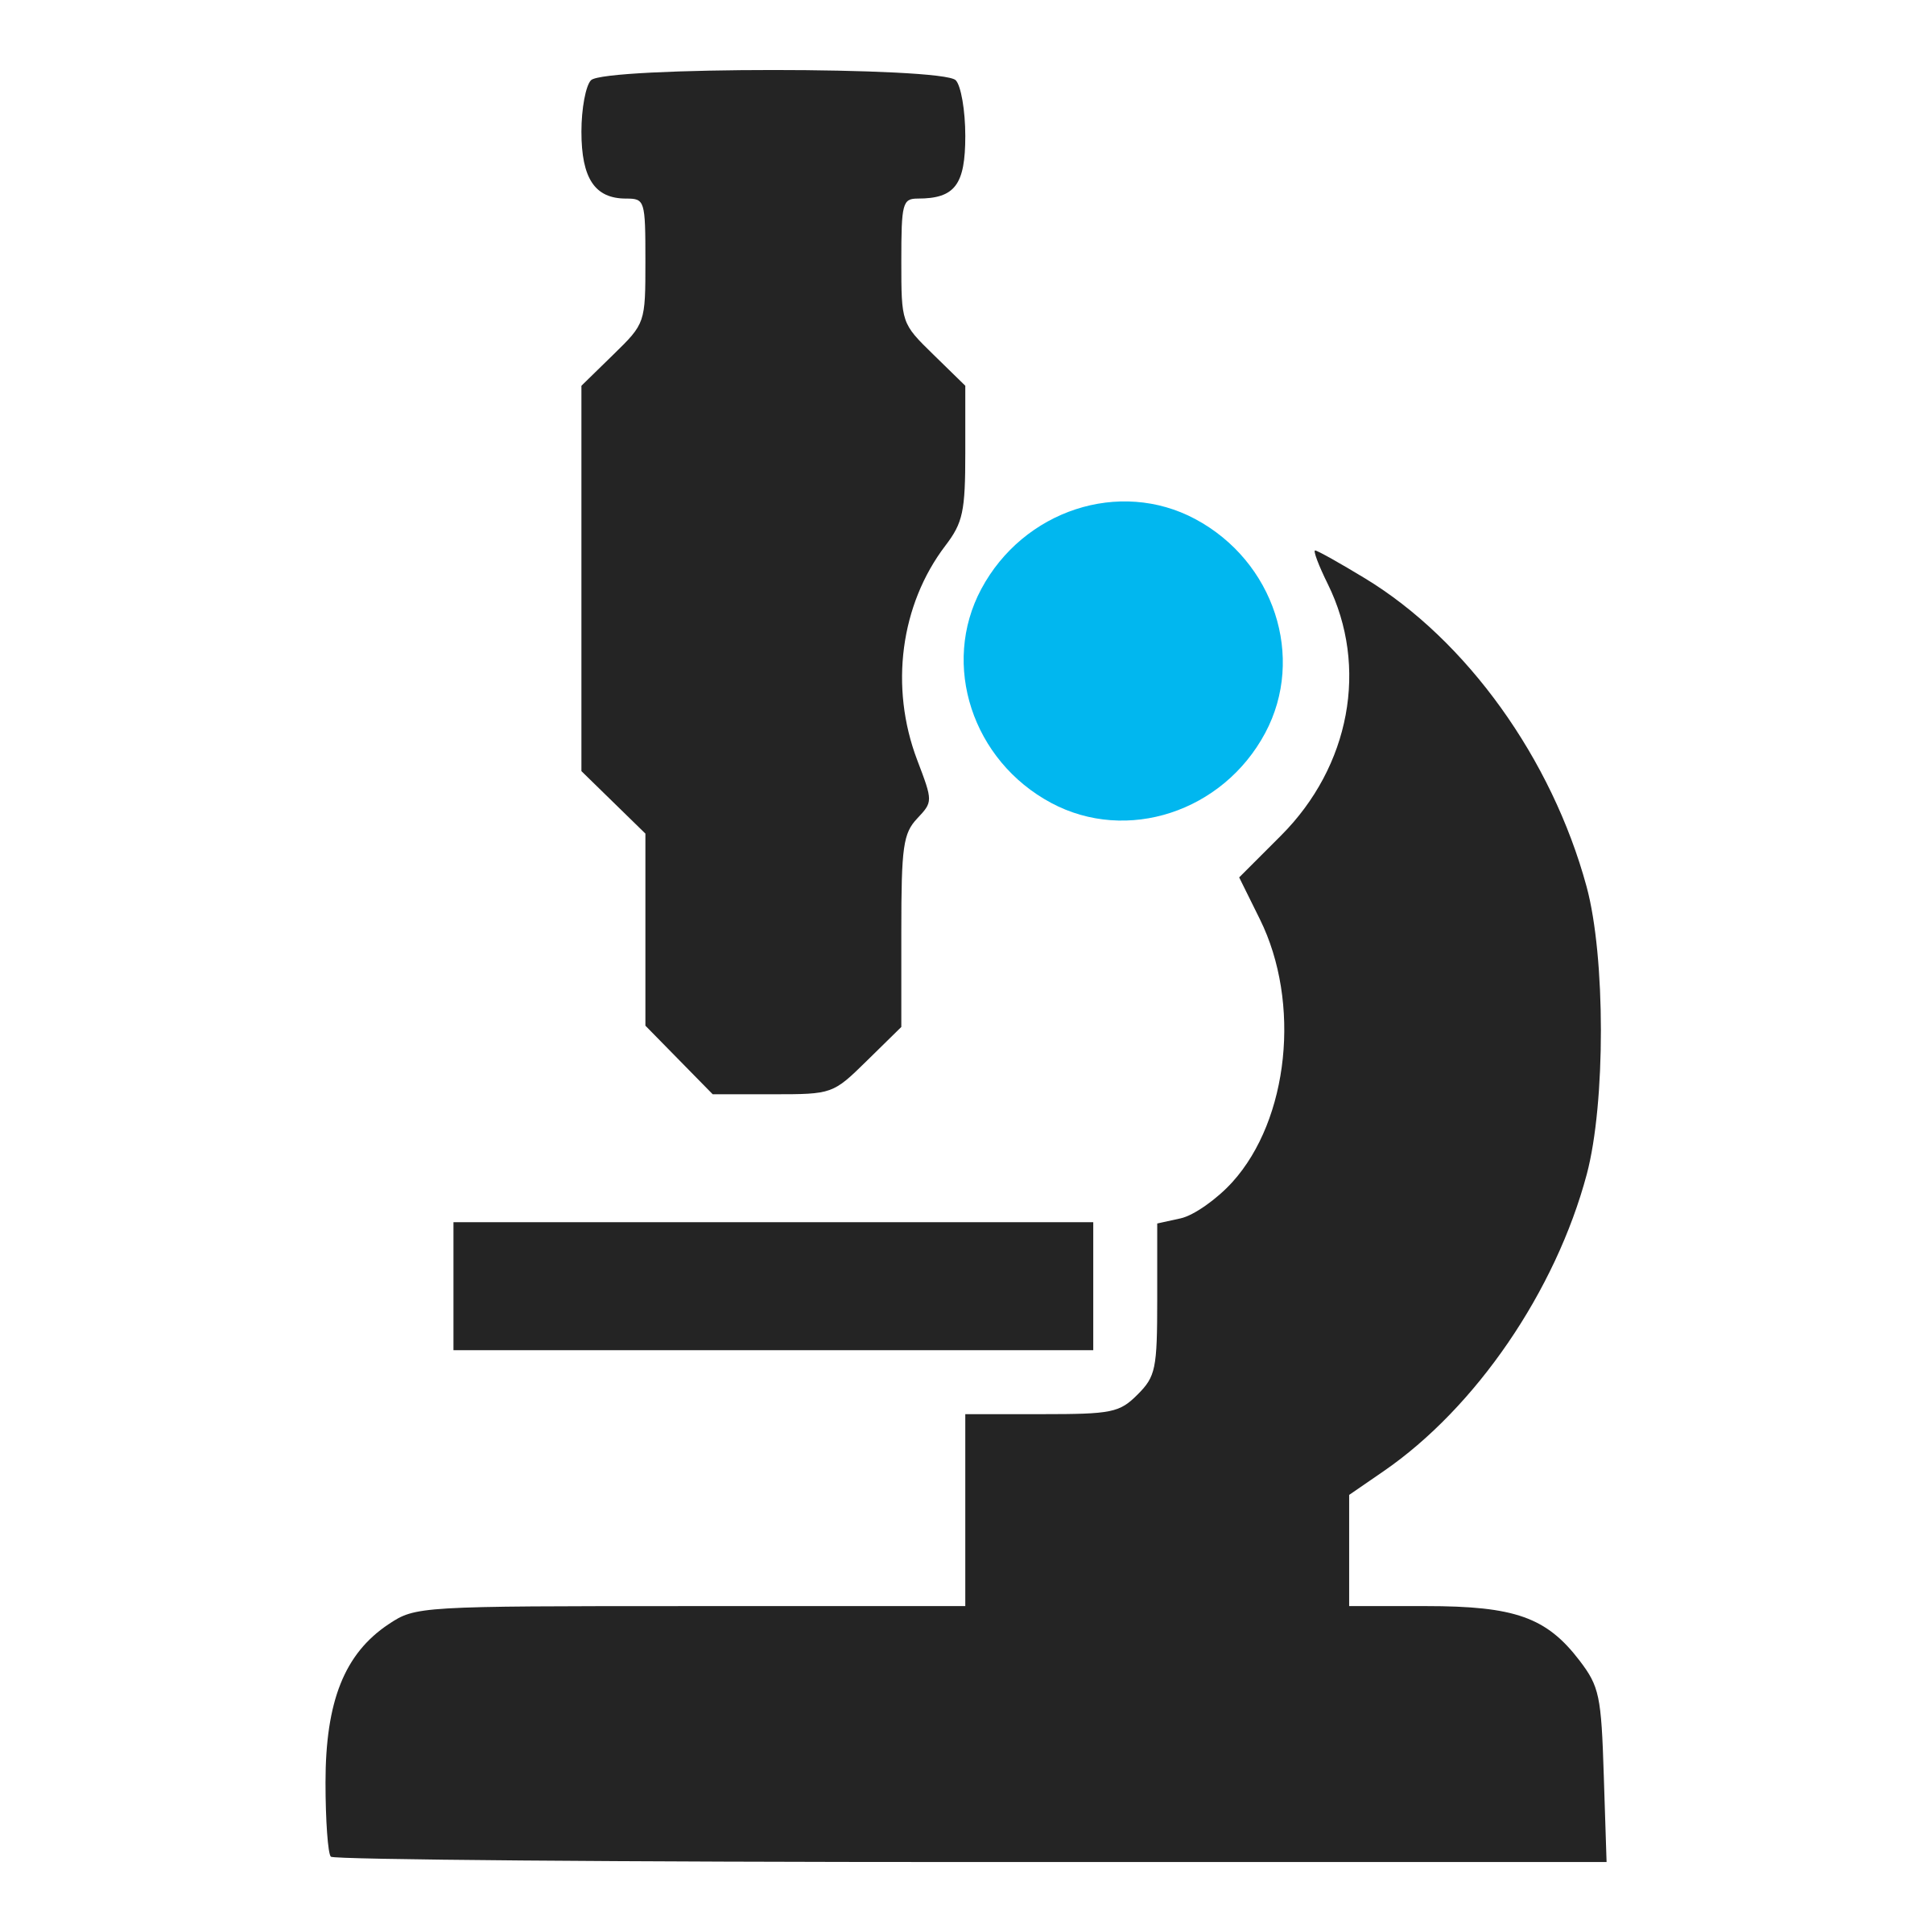 Clipart science icon. Microscope big image png